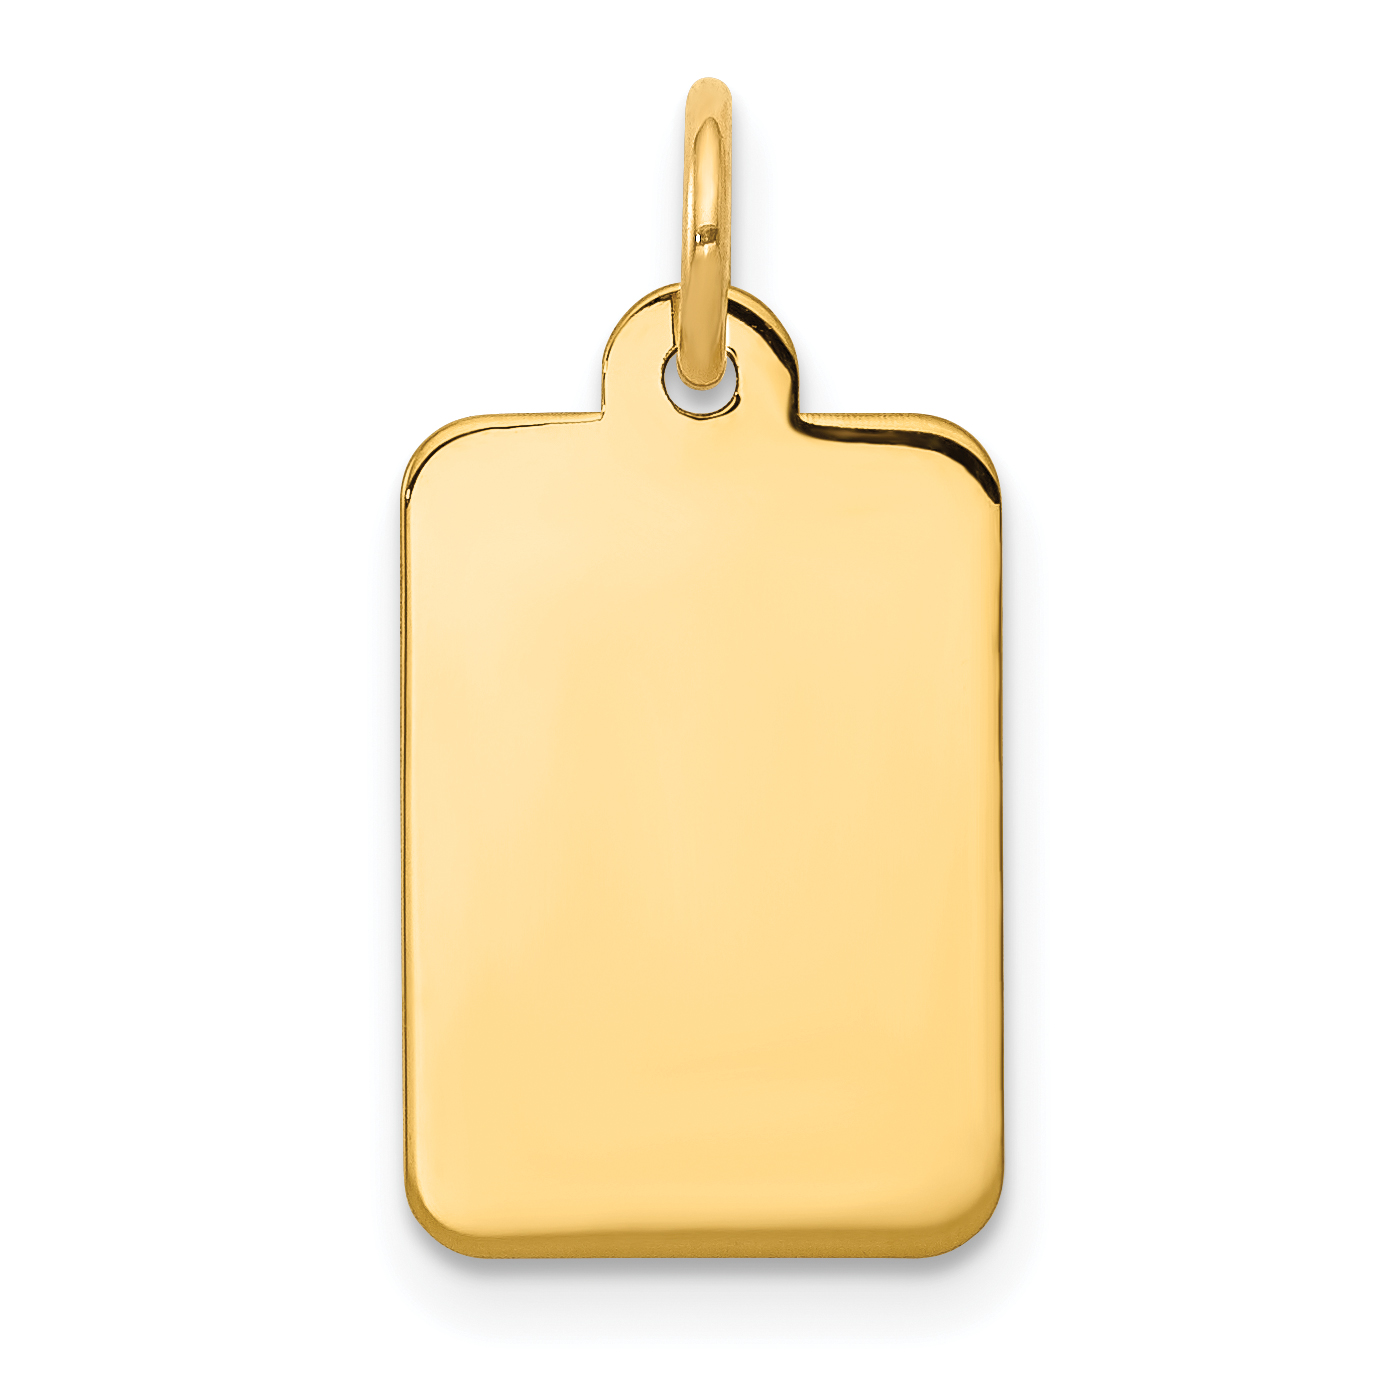 14K Yellow Gold Plain .011 Gauge Rectangular Engravable Disc Charm - image 2 of 2